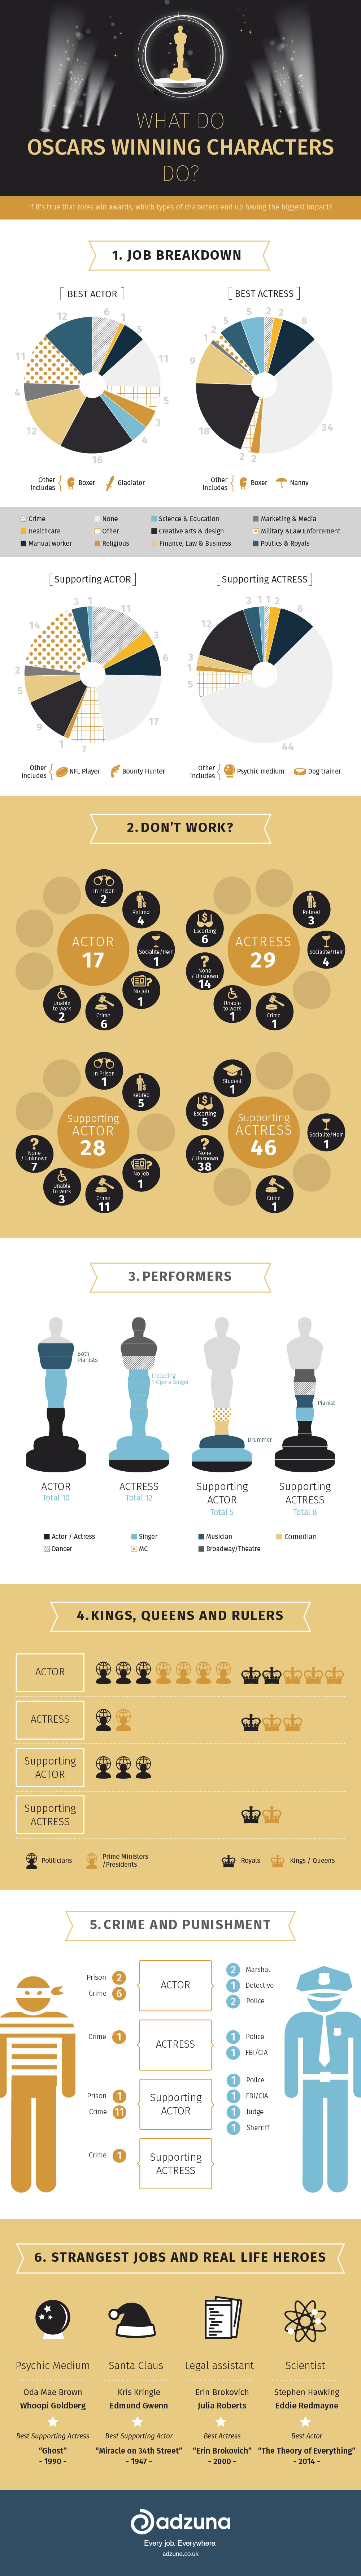 adzuna-oscar-winners-jobs